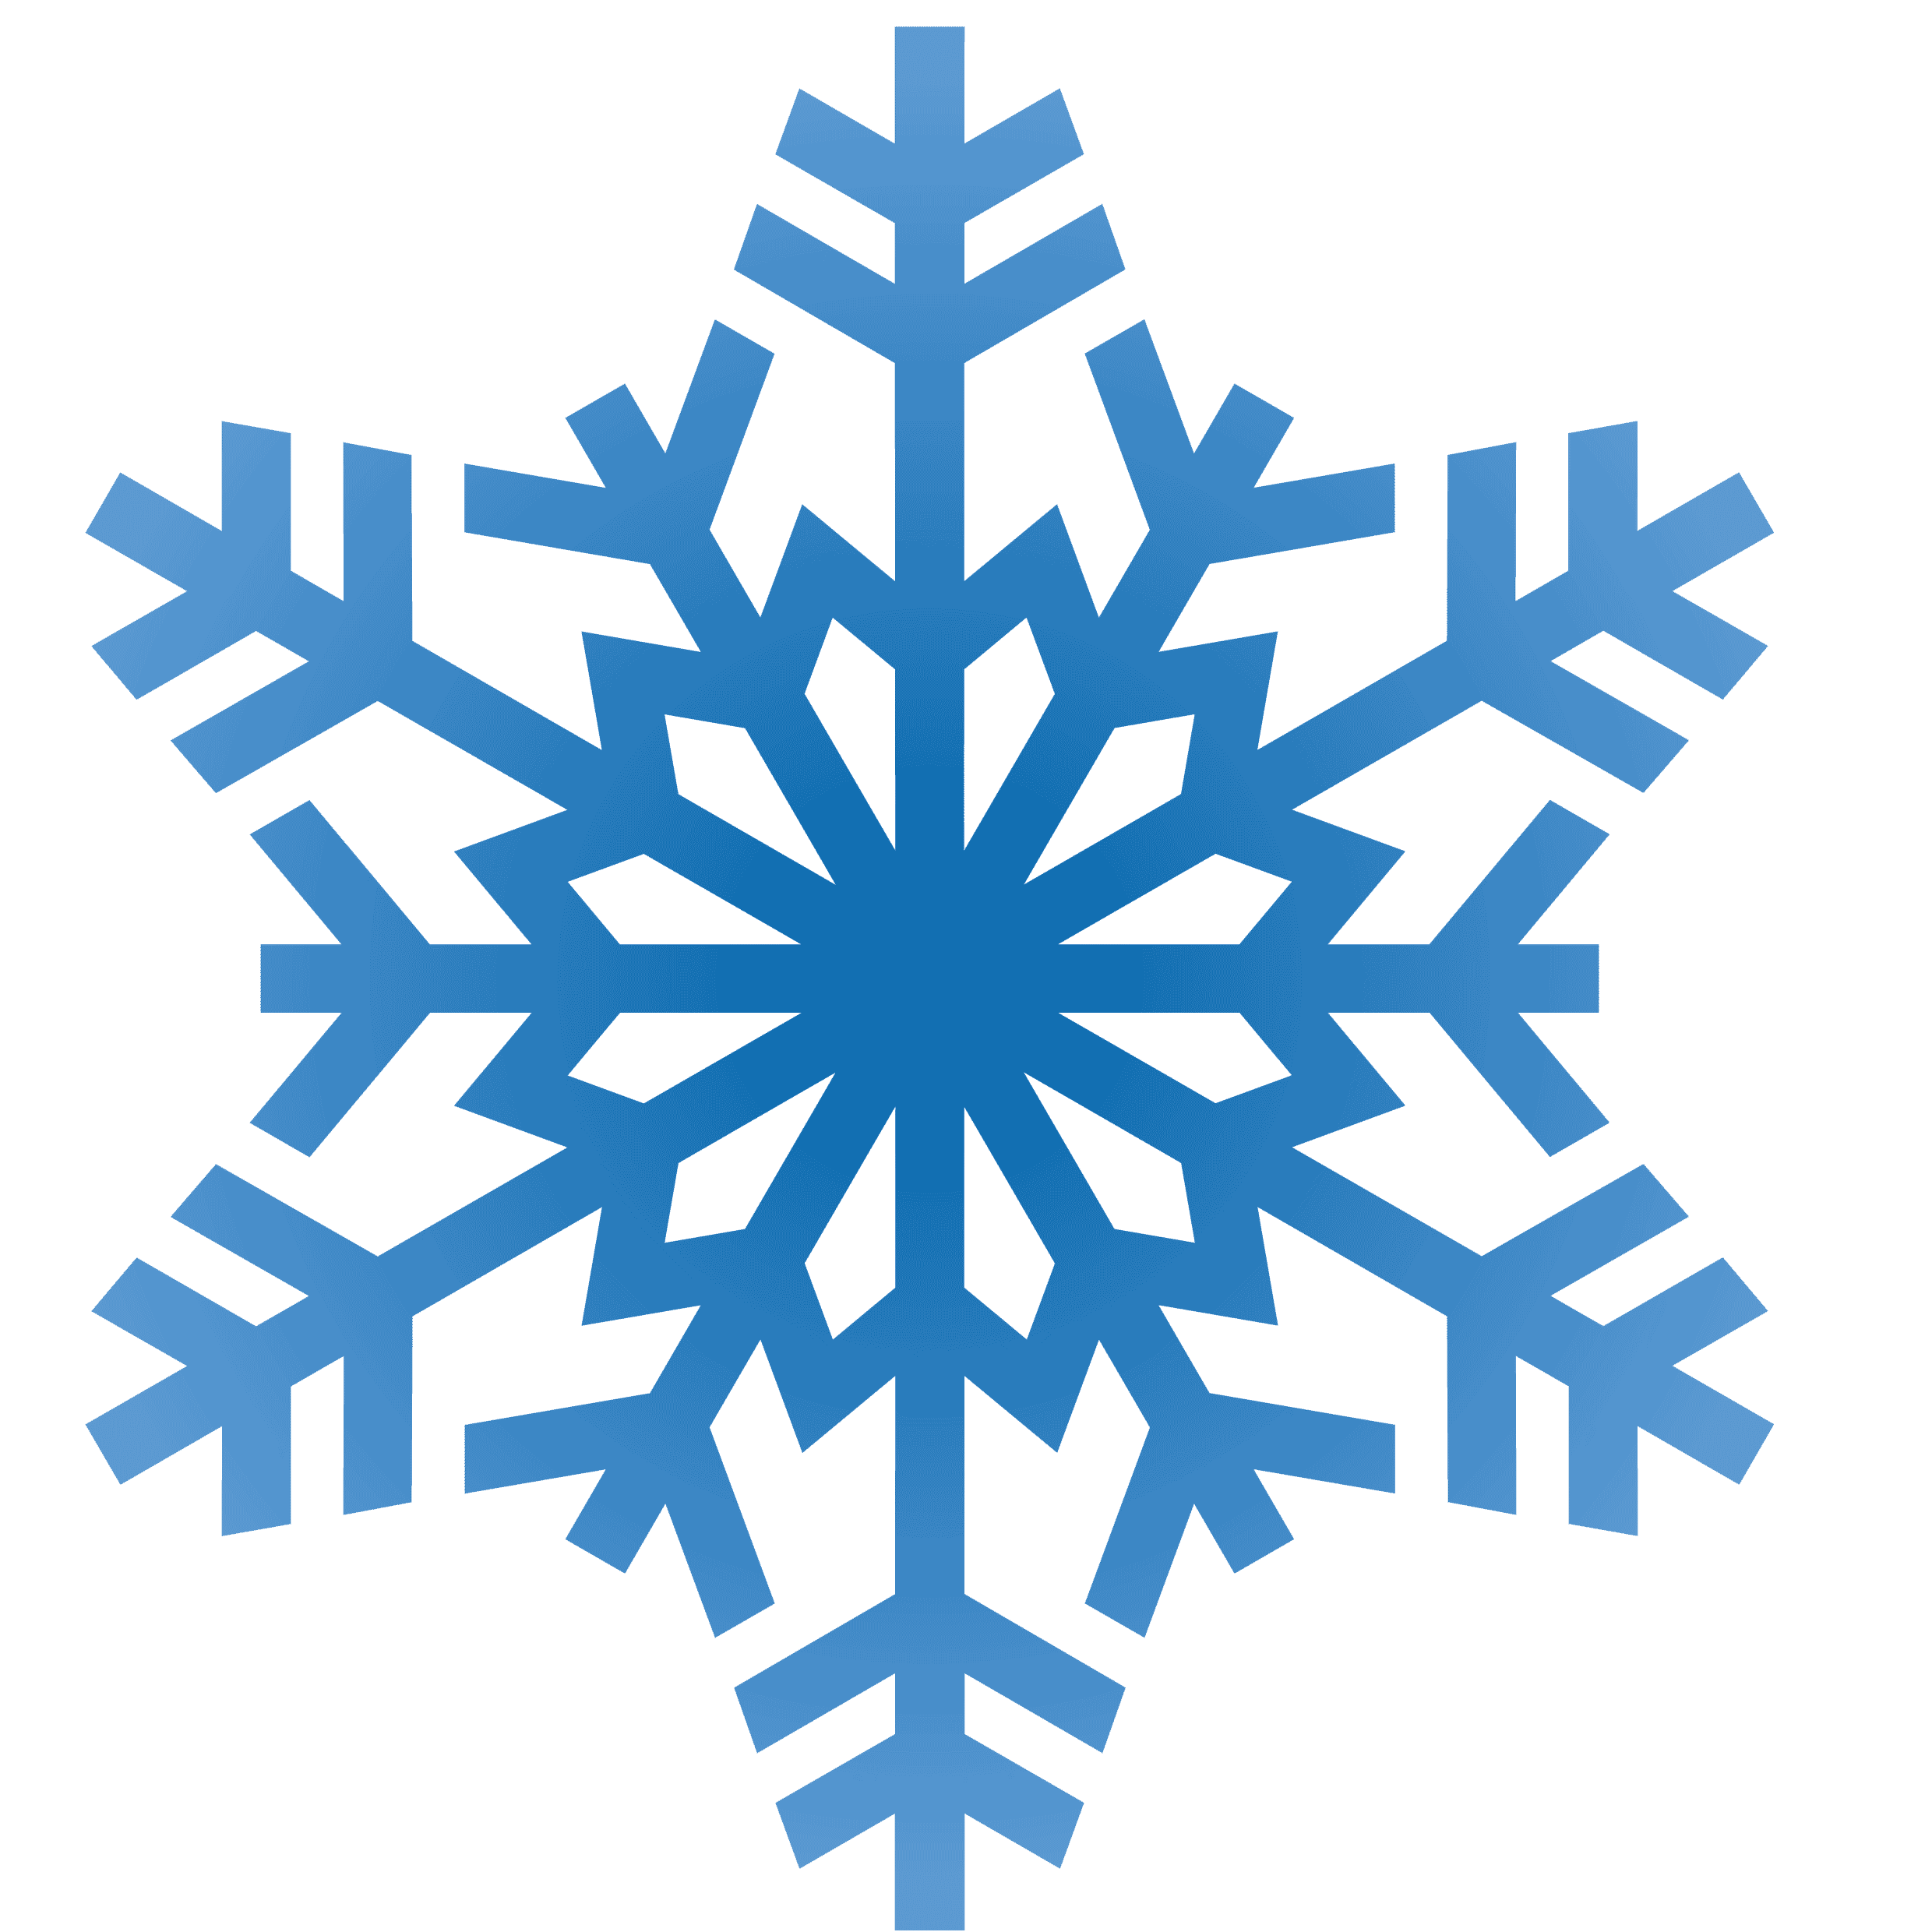 Snowflake clipart sketch graphic royalty free download Winter Roundup! The best of places to go, things to do and tips for ... graphic royalty free download